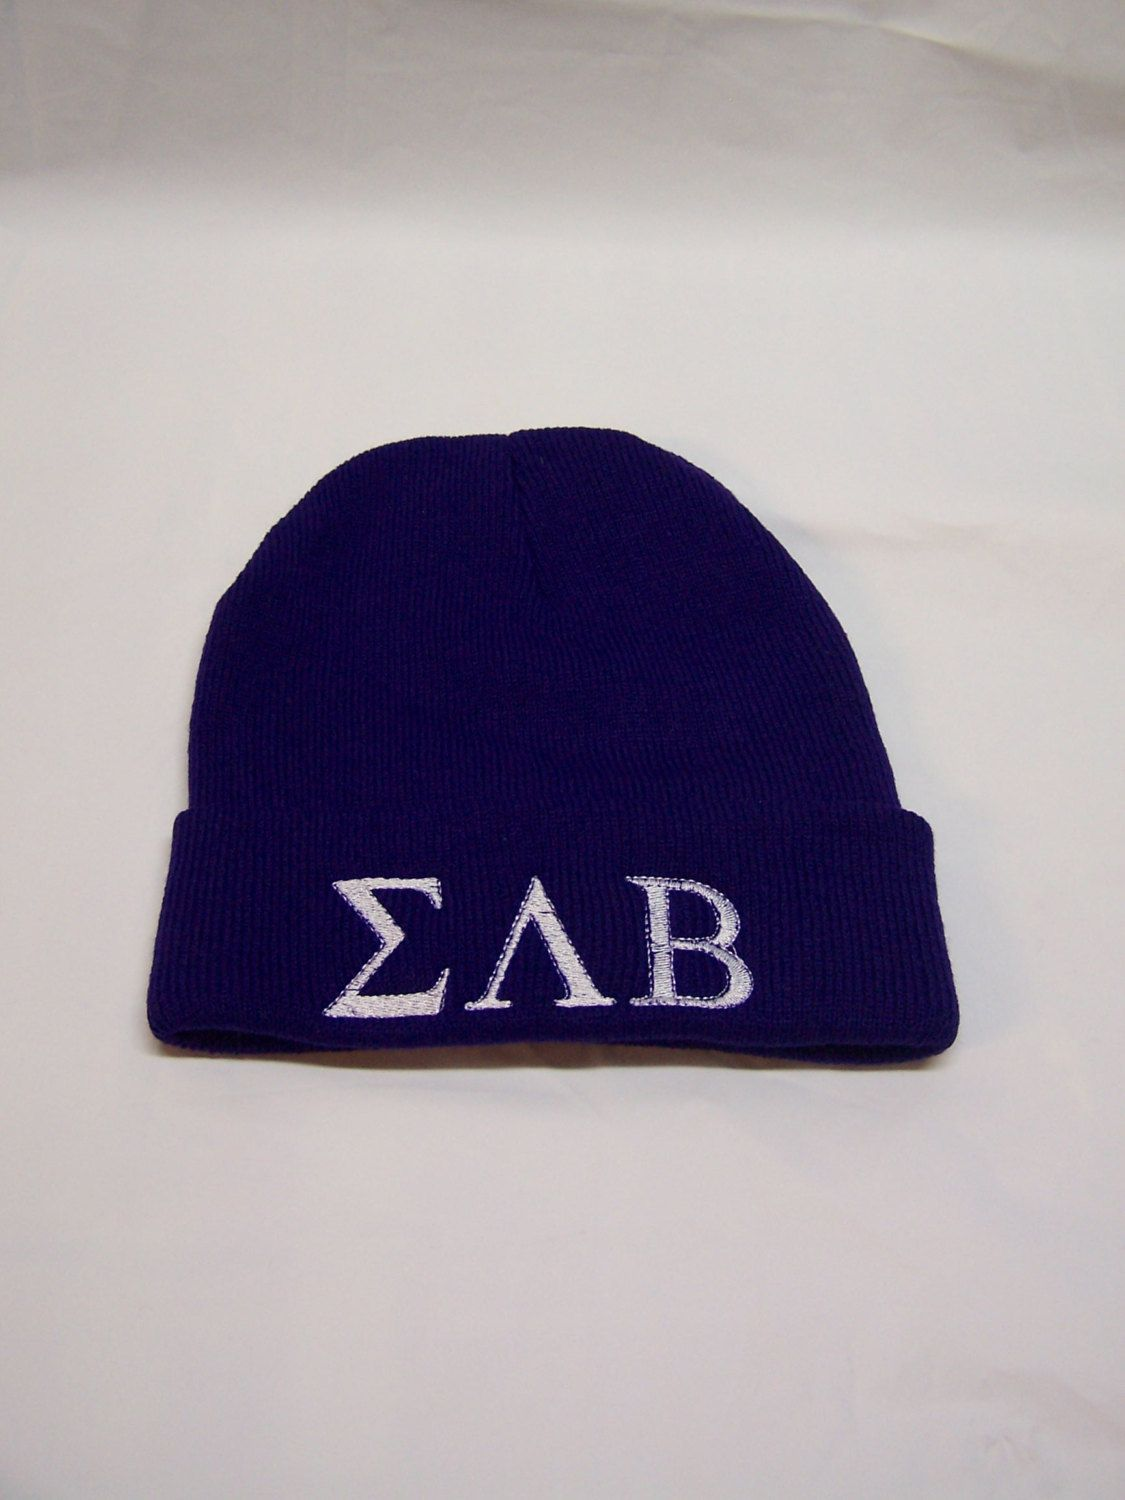 SIGMA LAMBDA BETA Purple Embroidered Greek Letter Monogrammed Acrylic Knit  Beanie by MoDessaDesigns on Etsy 05cd7f44cca